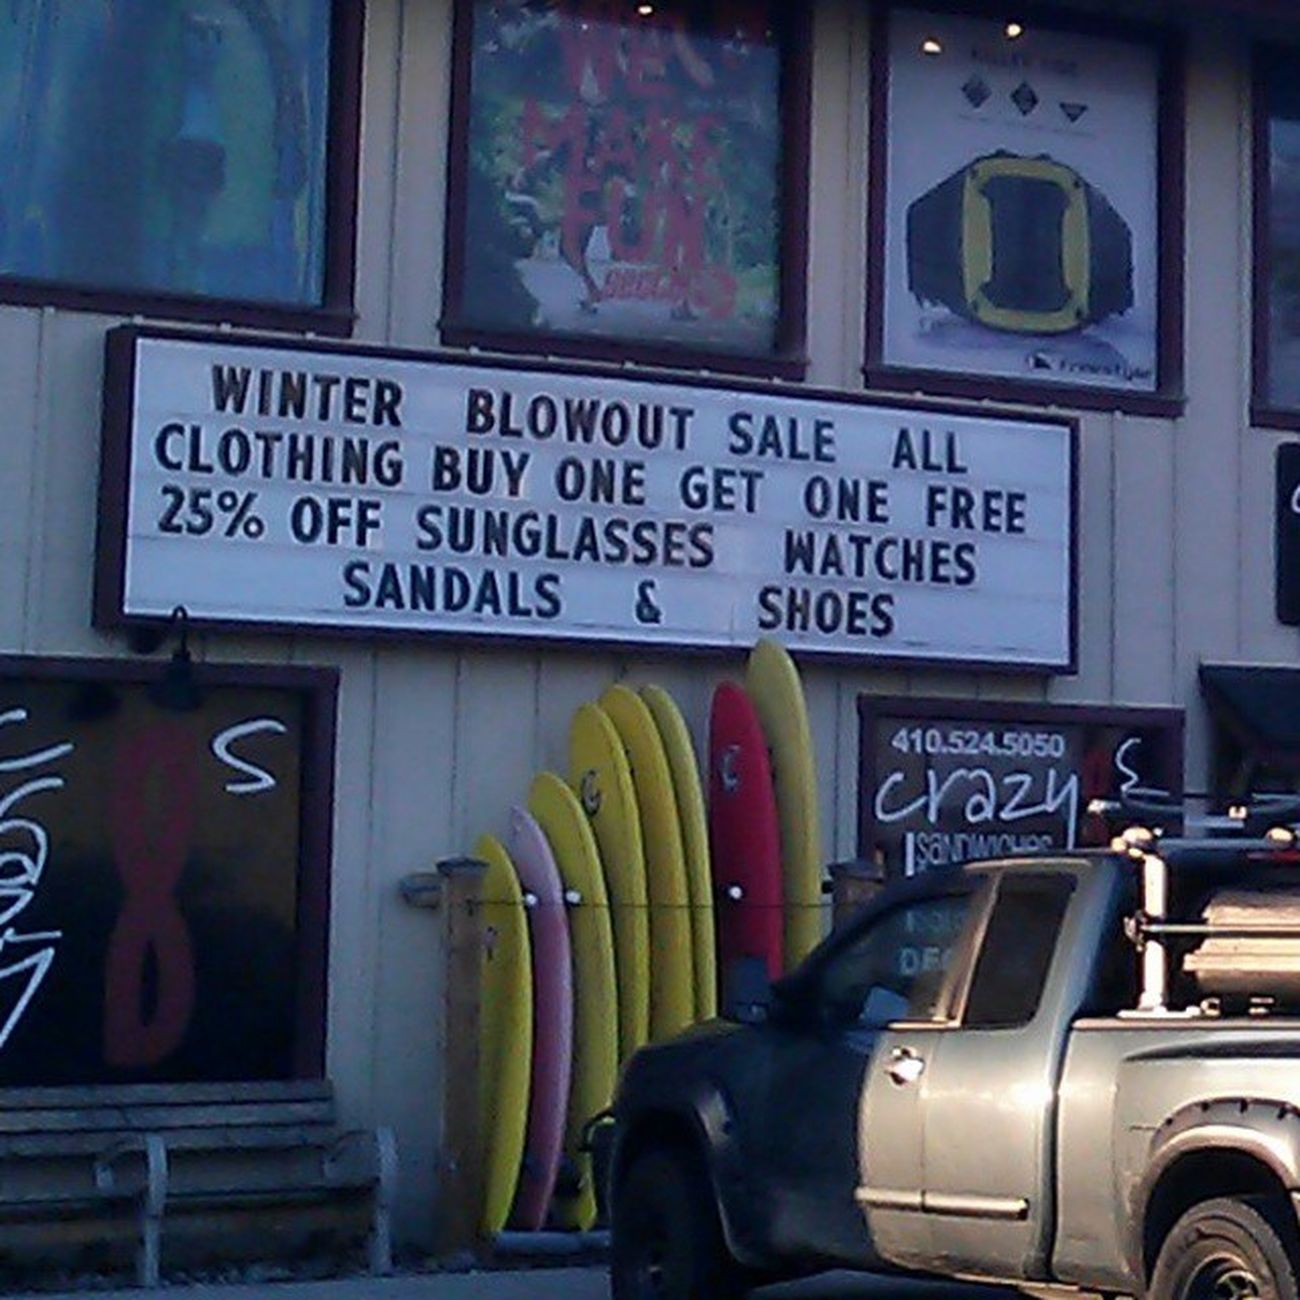 For those lucky enough to be coming down this weekend for some of the events around town, here's one for the To-Do list.. OceanCity Maryland Ocmd Oceancitycool mdlivin fashion clothing sale surf